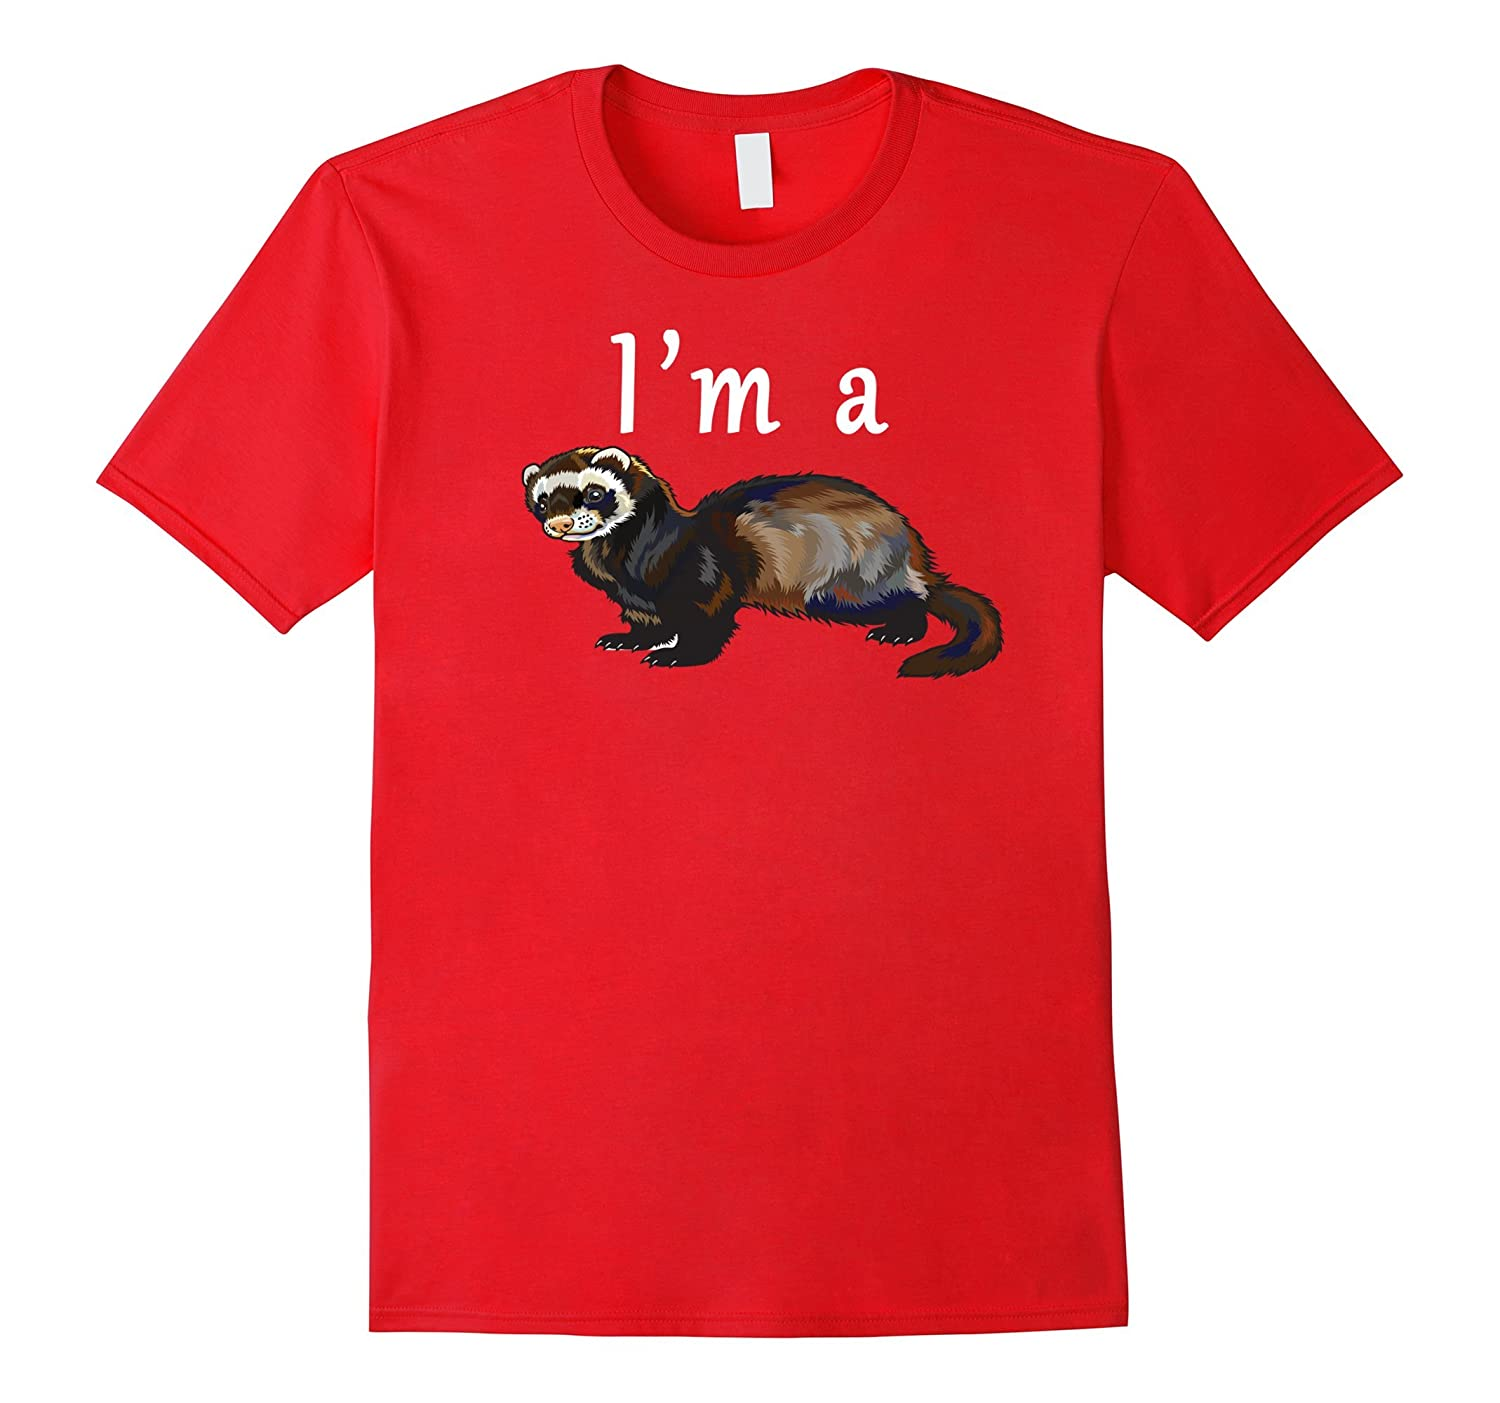 Im a ferret shirt - Ferret lovers tshirt for boys and girls-RT